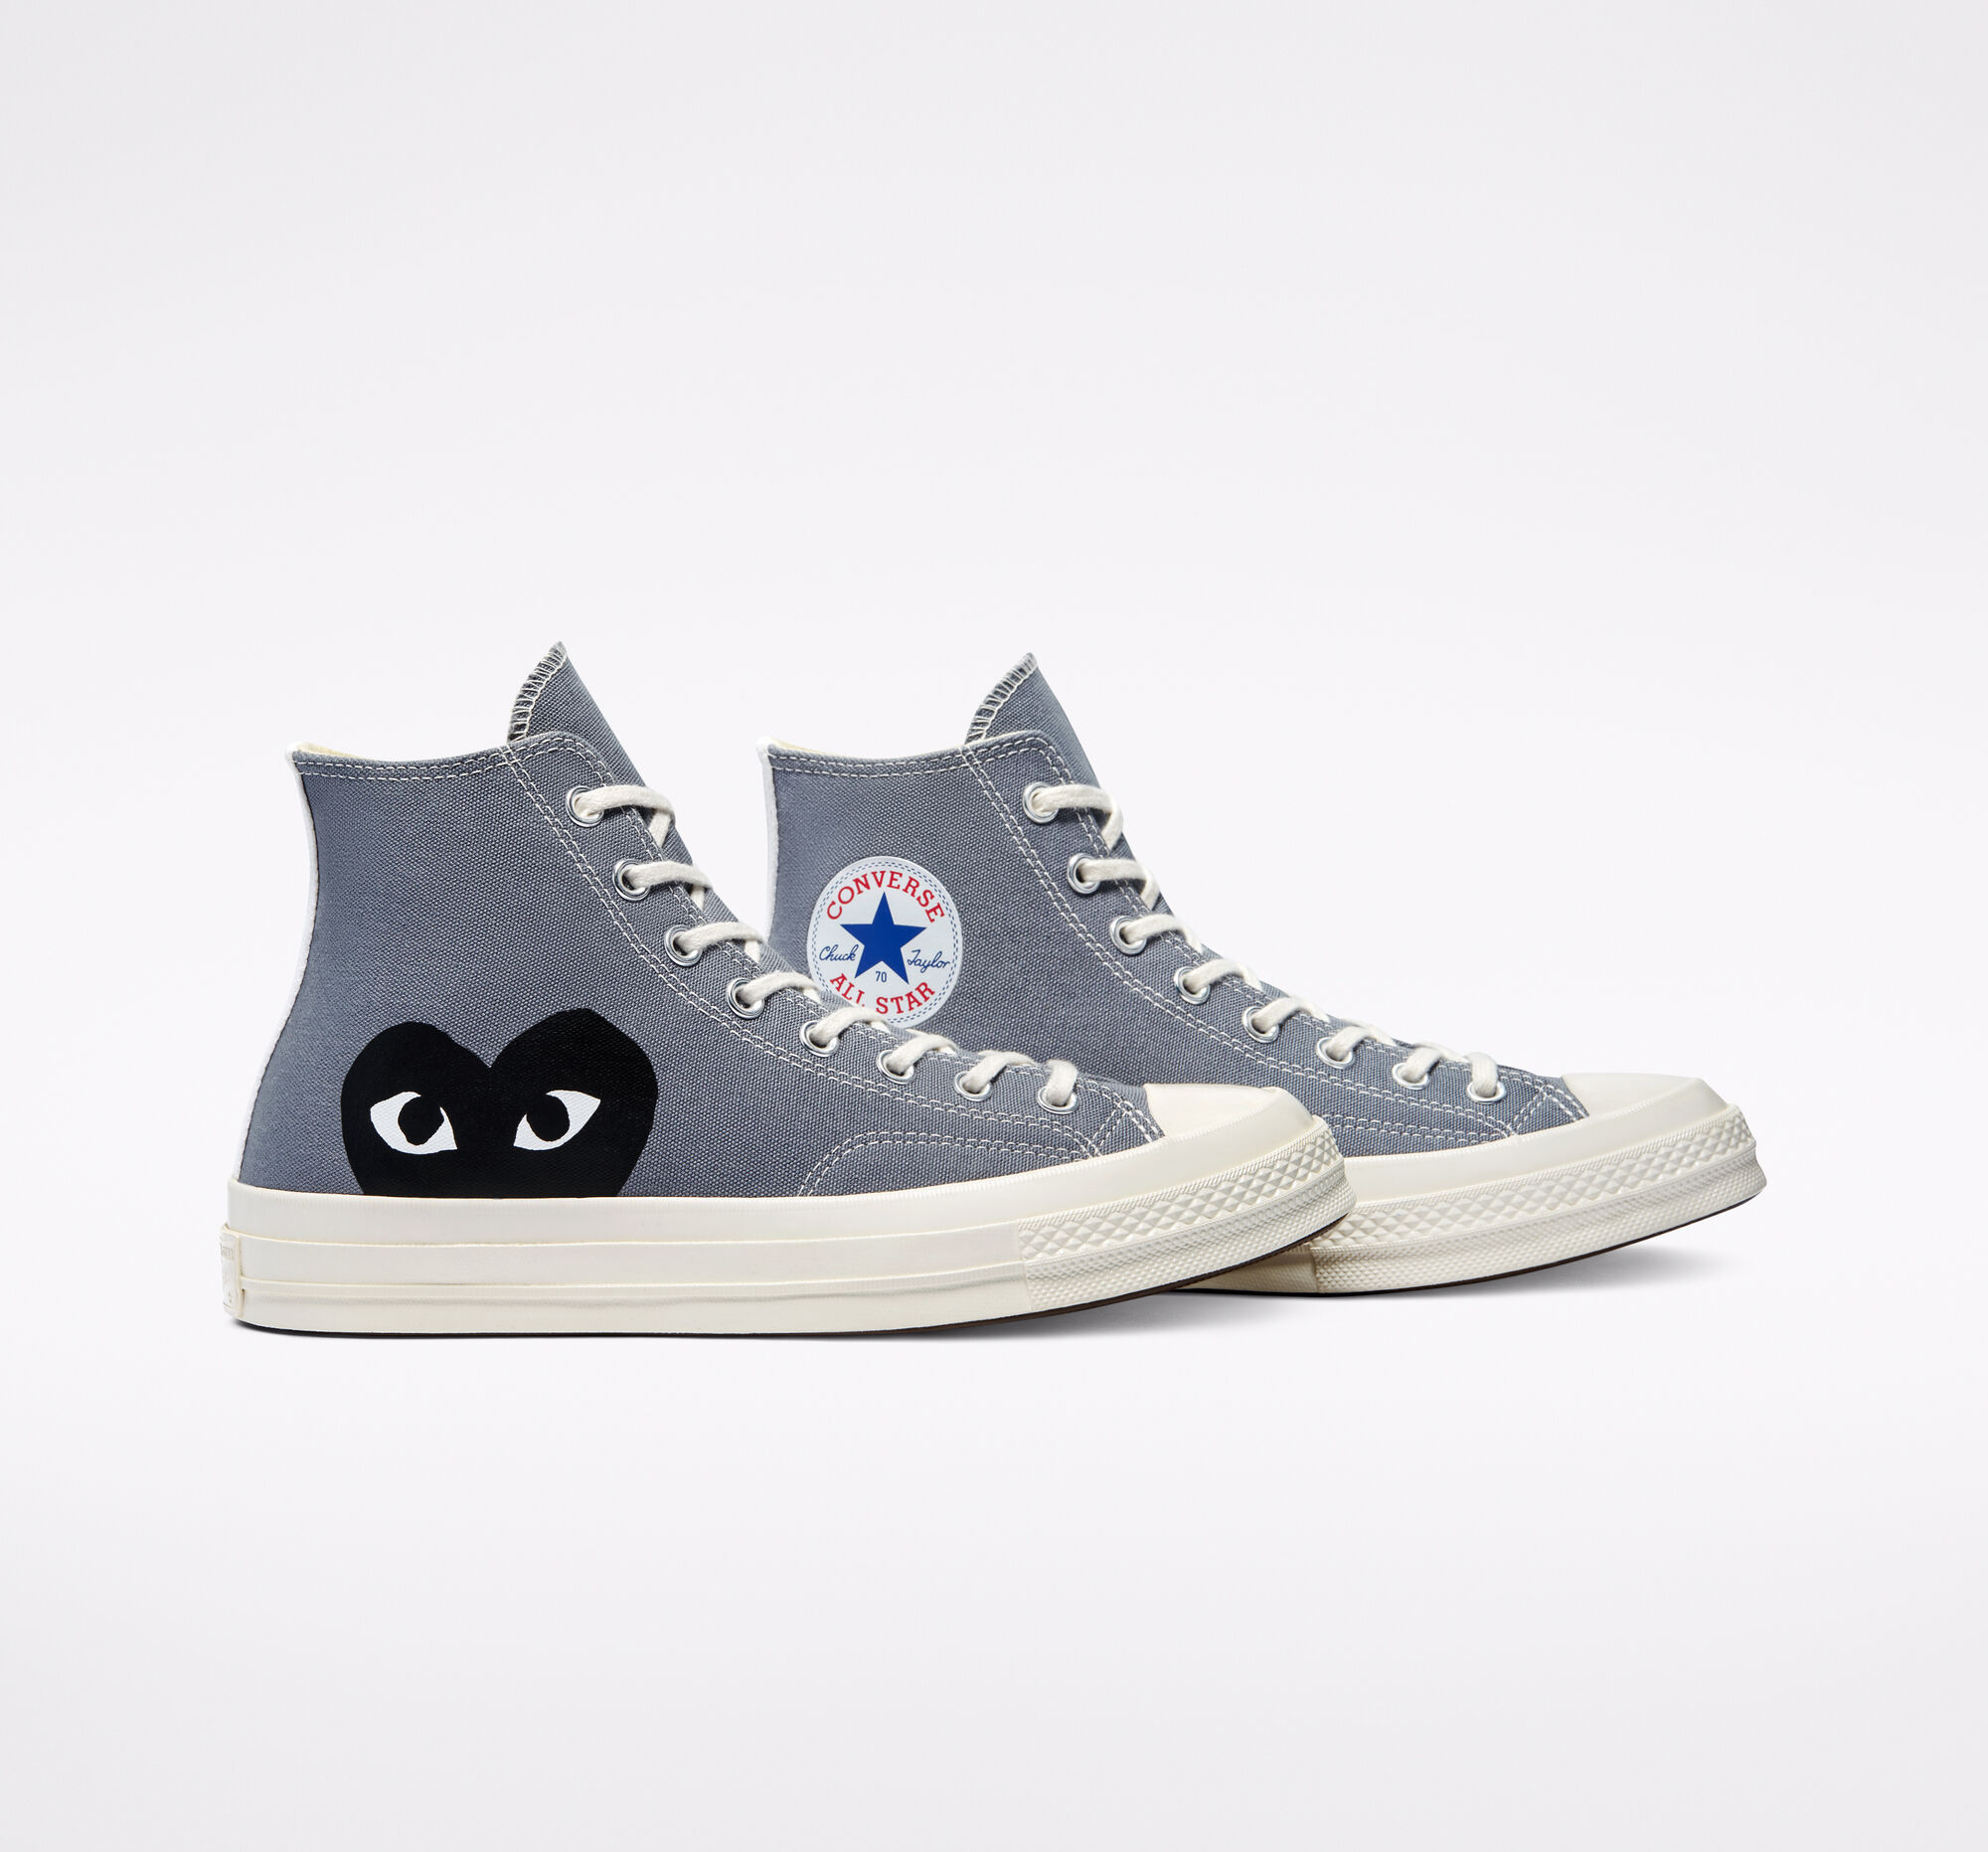 Comme des Garcons Play x Converse Chuck Taylor 70 High 'Steel Gray'